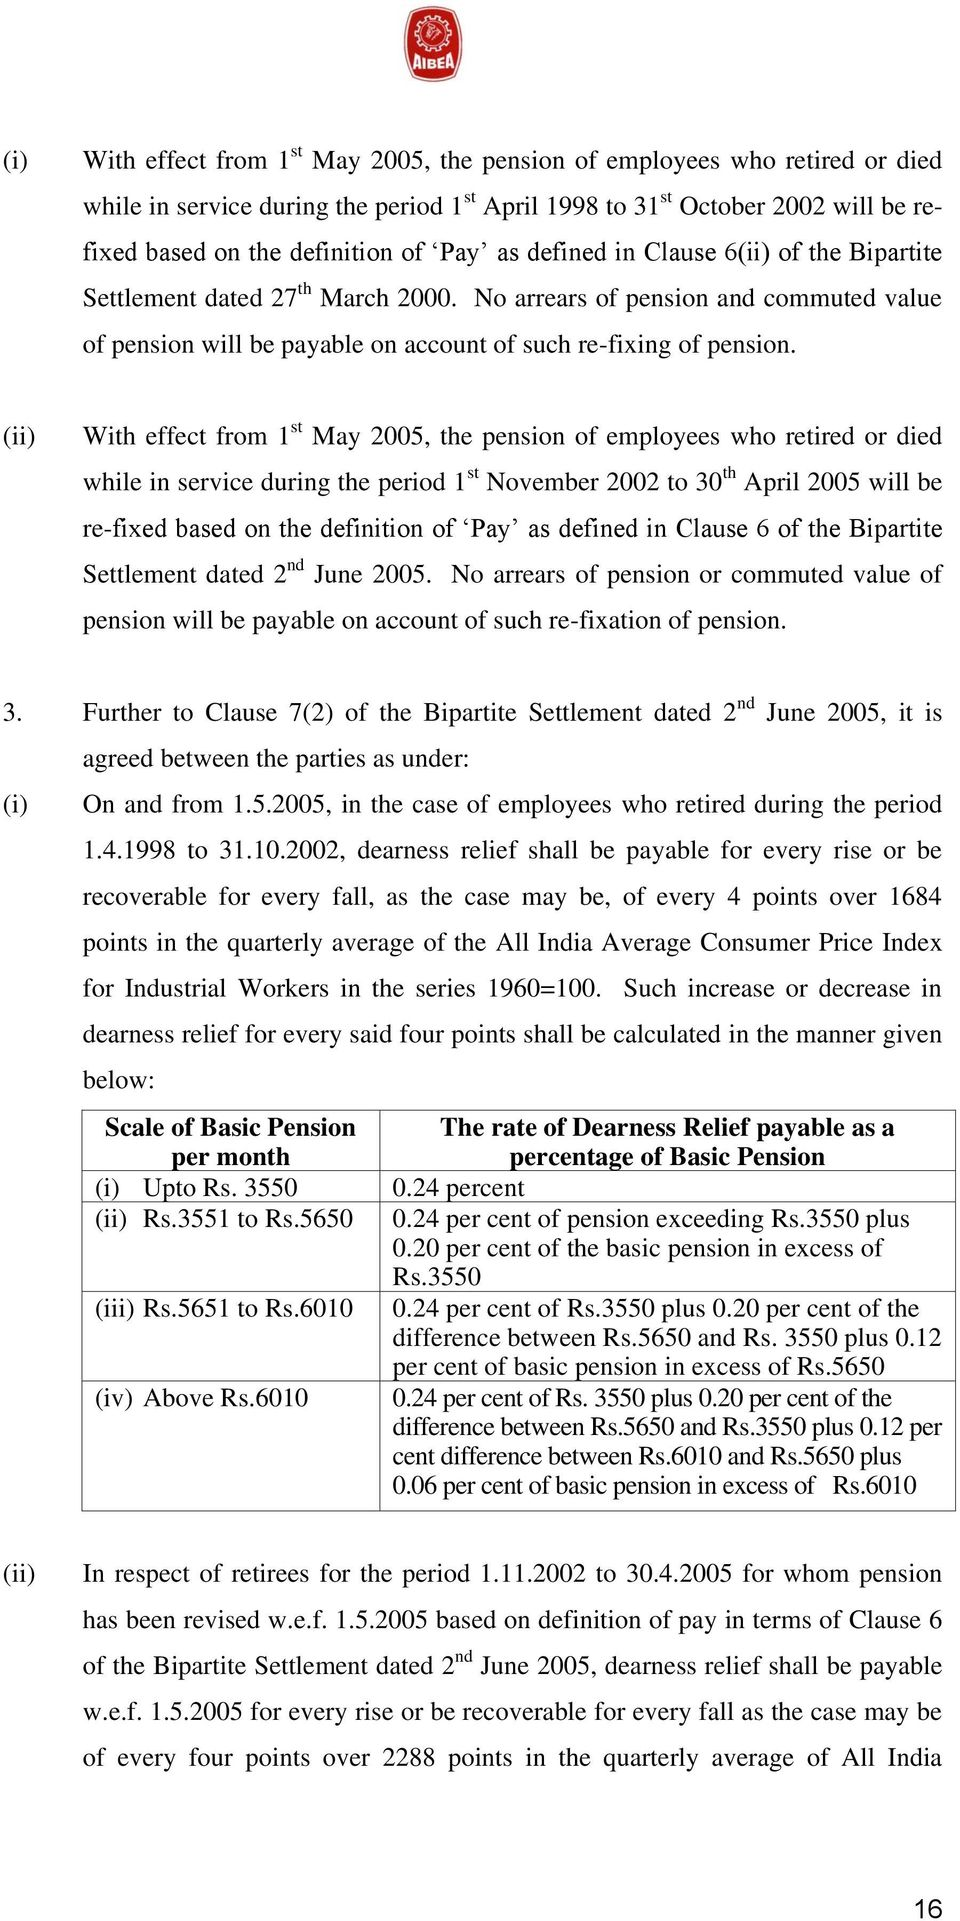 (ii) With effect from 1 st May 2005, the pension of employees who retired or died while in service during the period 1 st November 2002 to 30 th April 2005 will be re-fixed based on the definition of